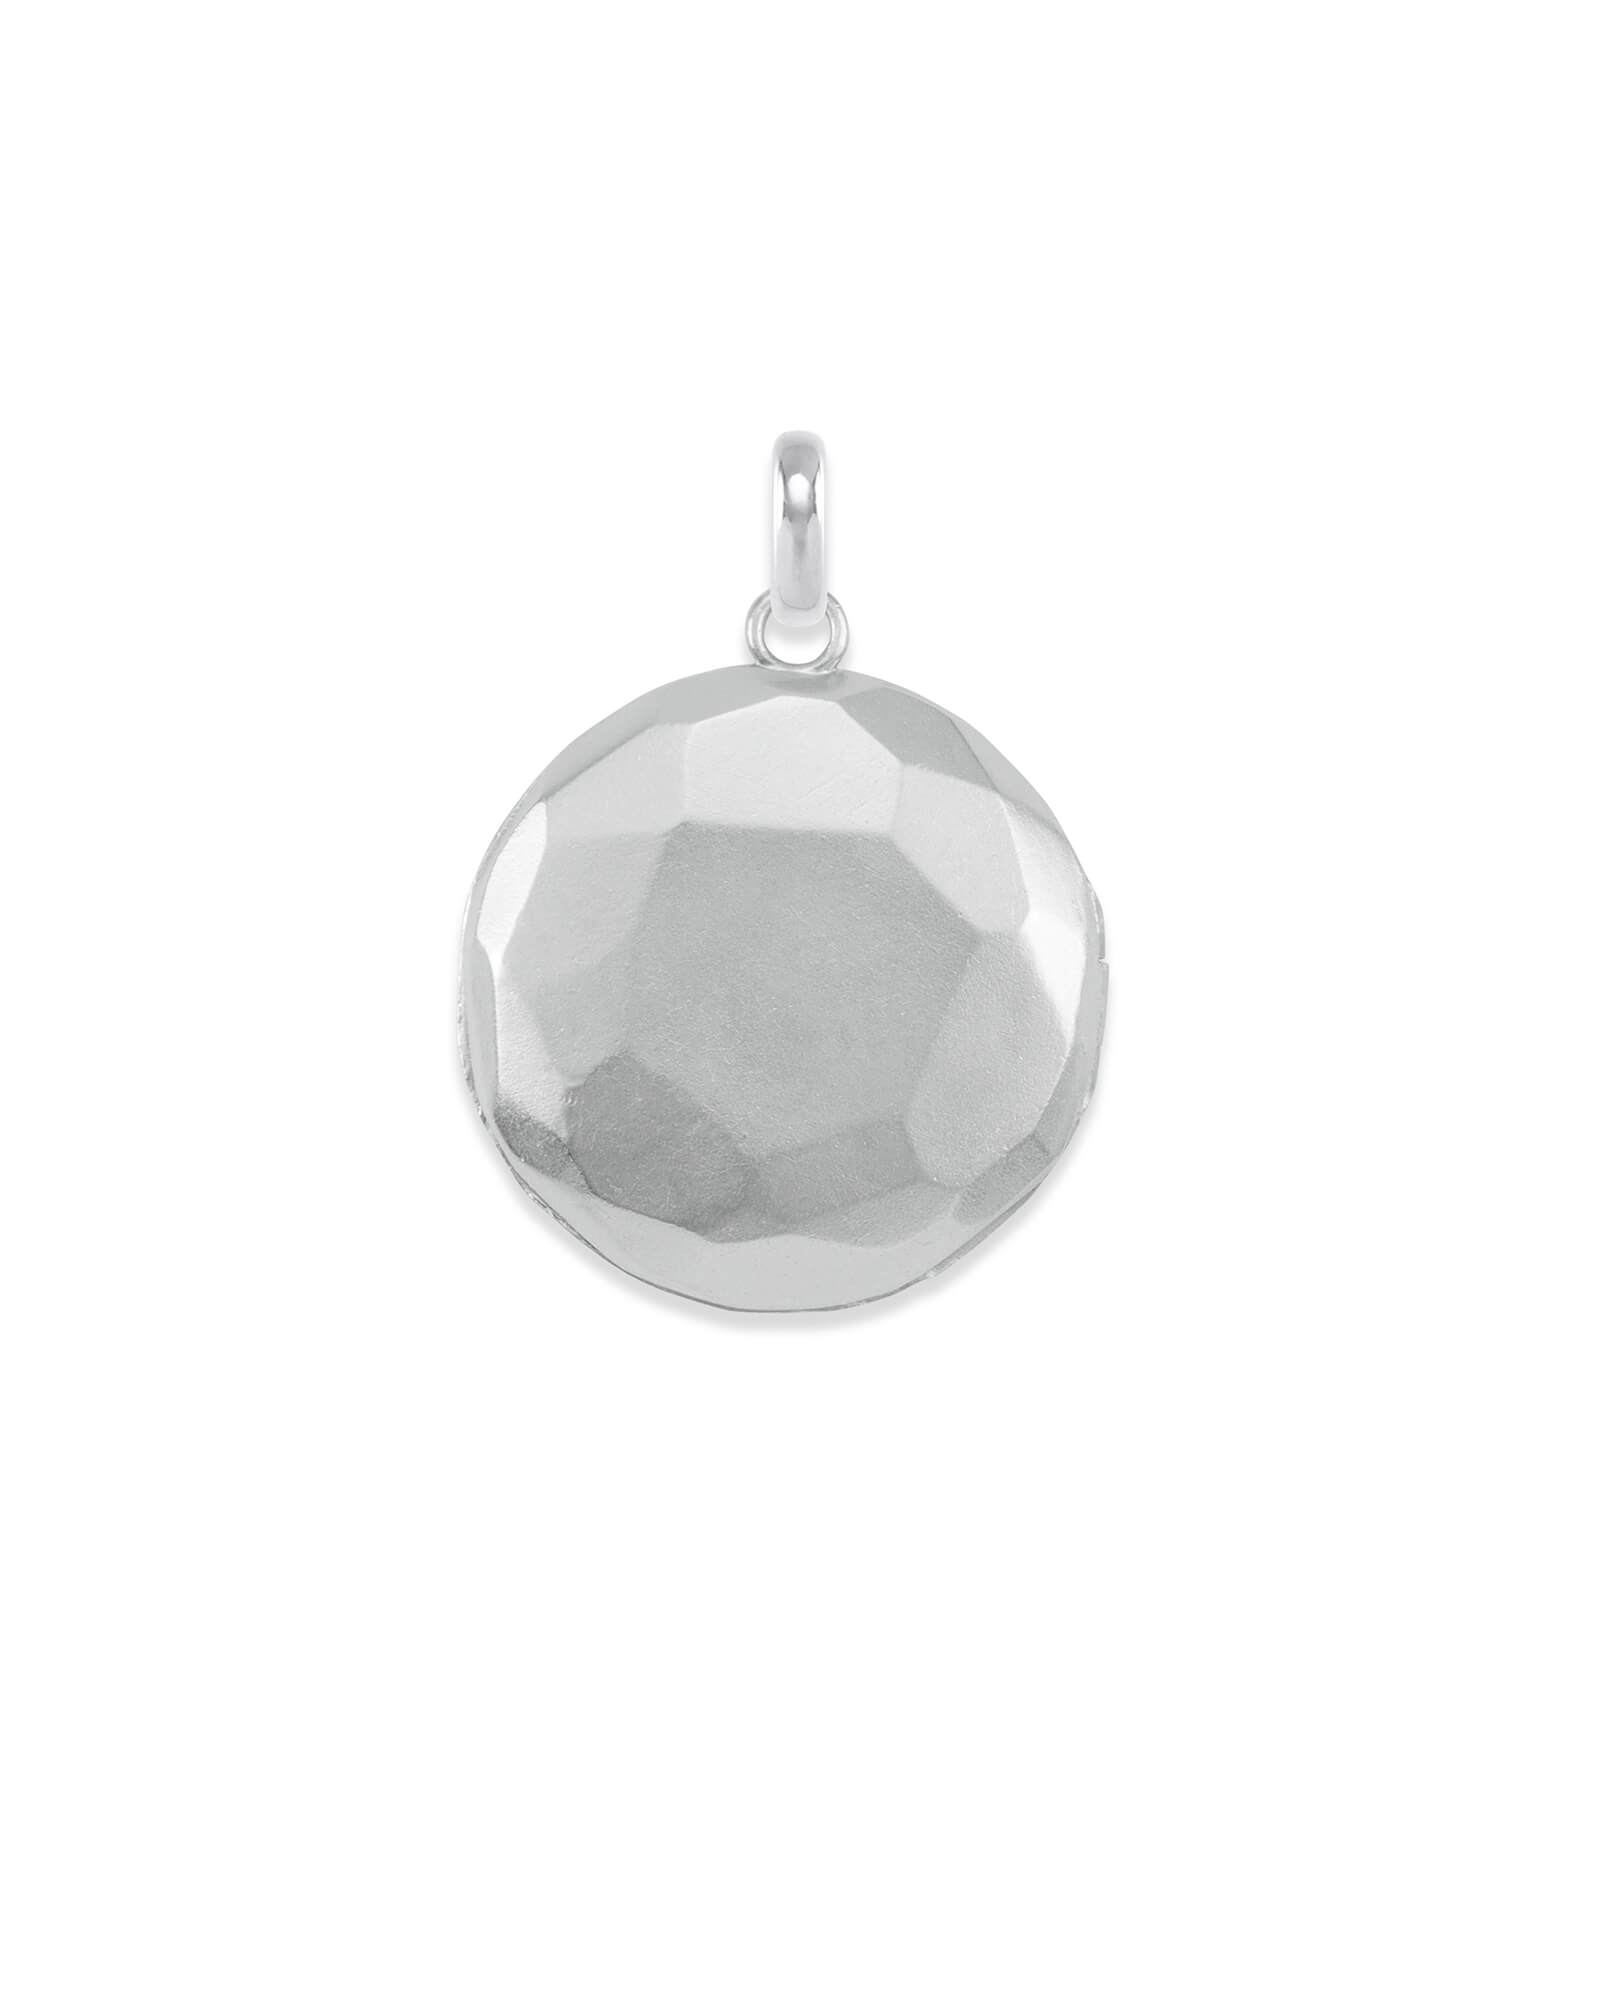 Large Locket Charm in Silver